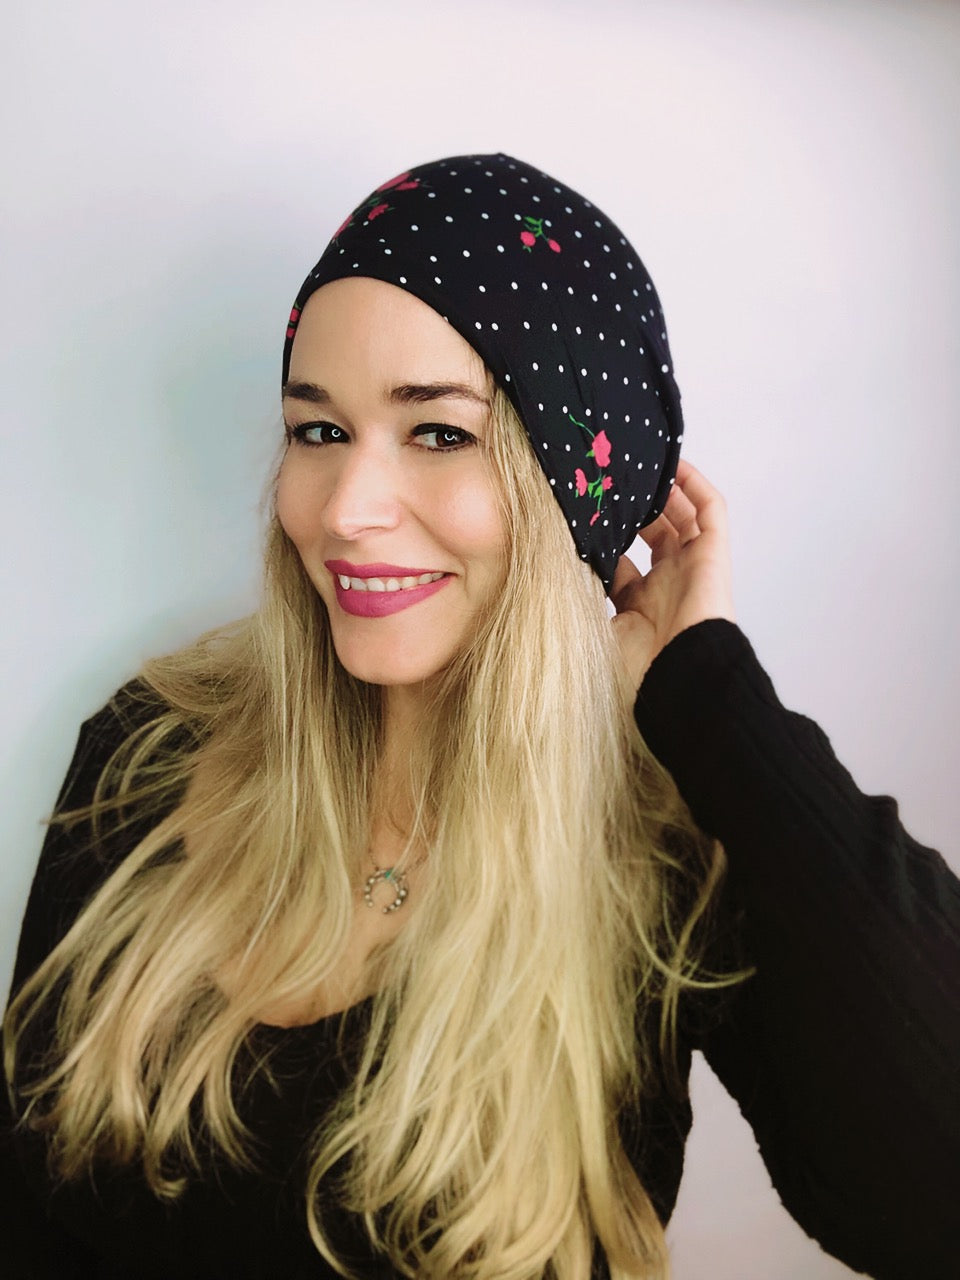 Marilyn Slouch Beanie Slouch Beanies - Pieces To Peaces